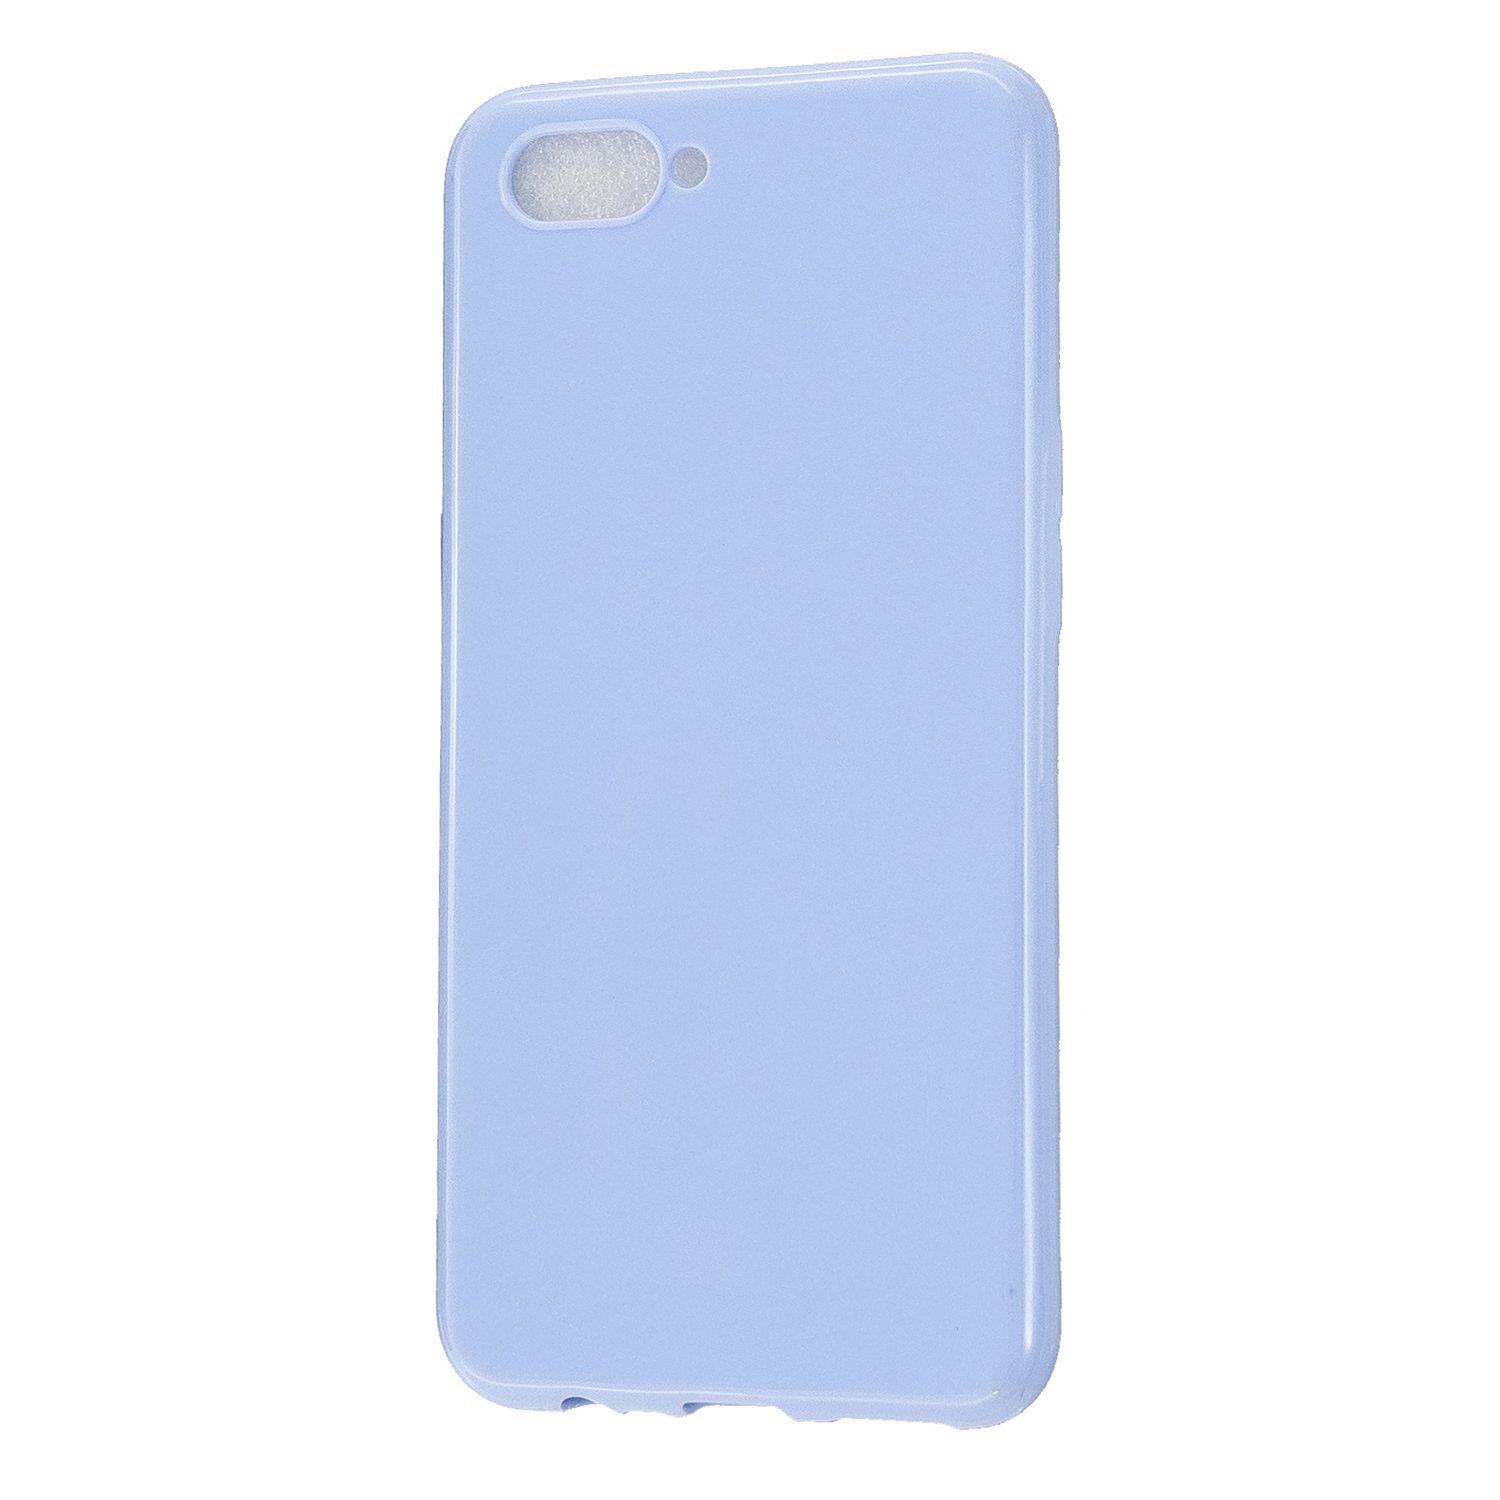 For OPPO A5/A3S/A9 2020 Cellphone Cover Soft Touch Anti-scratch Shockproof TPU Mobile Phone Case  Taro purple